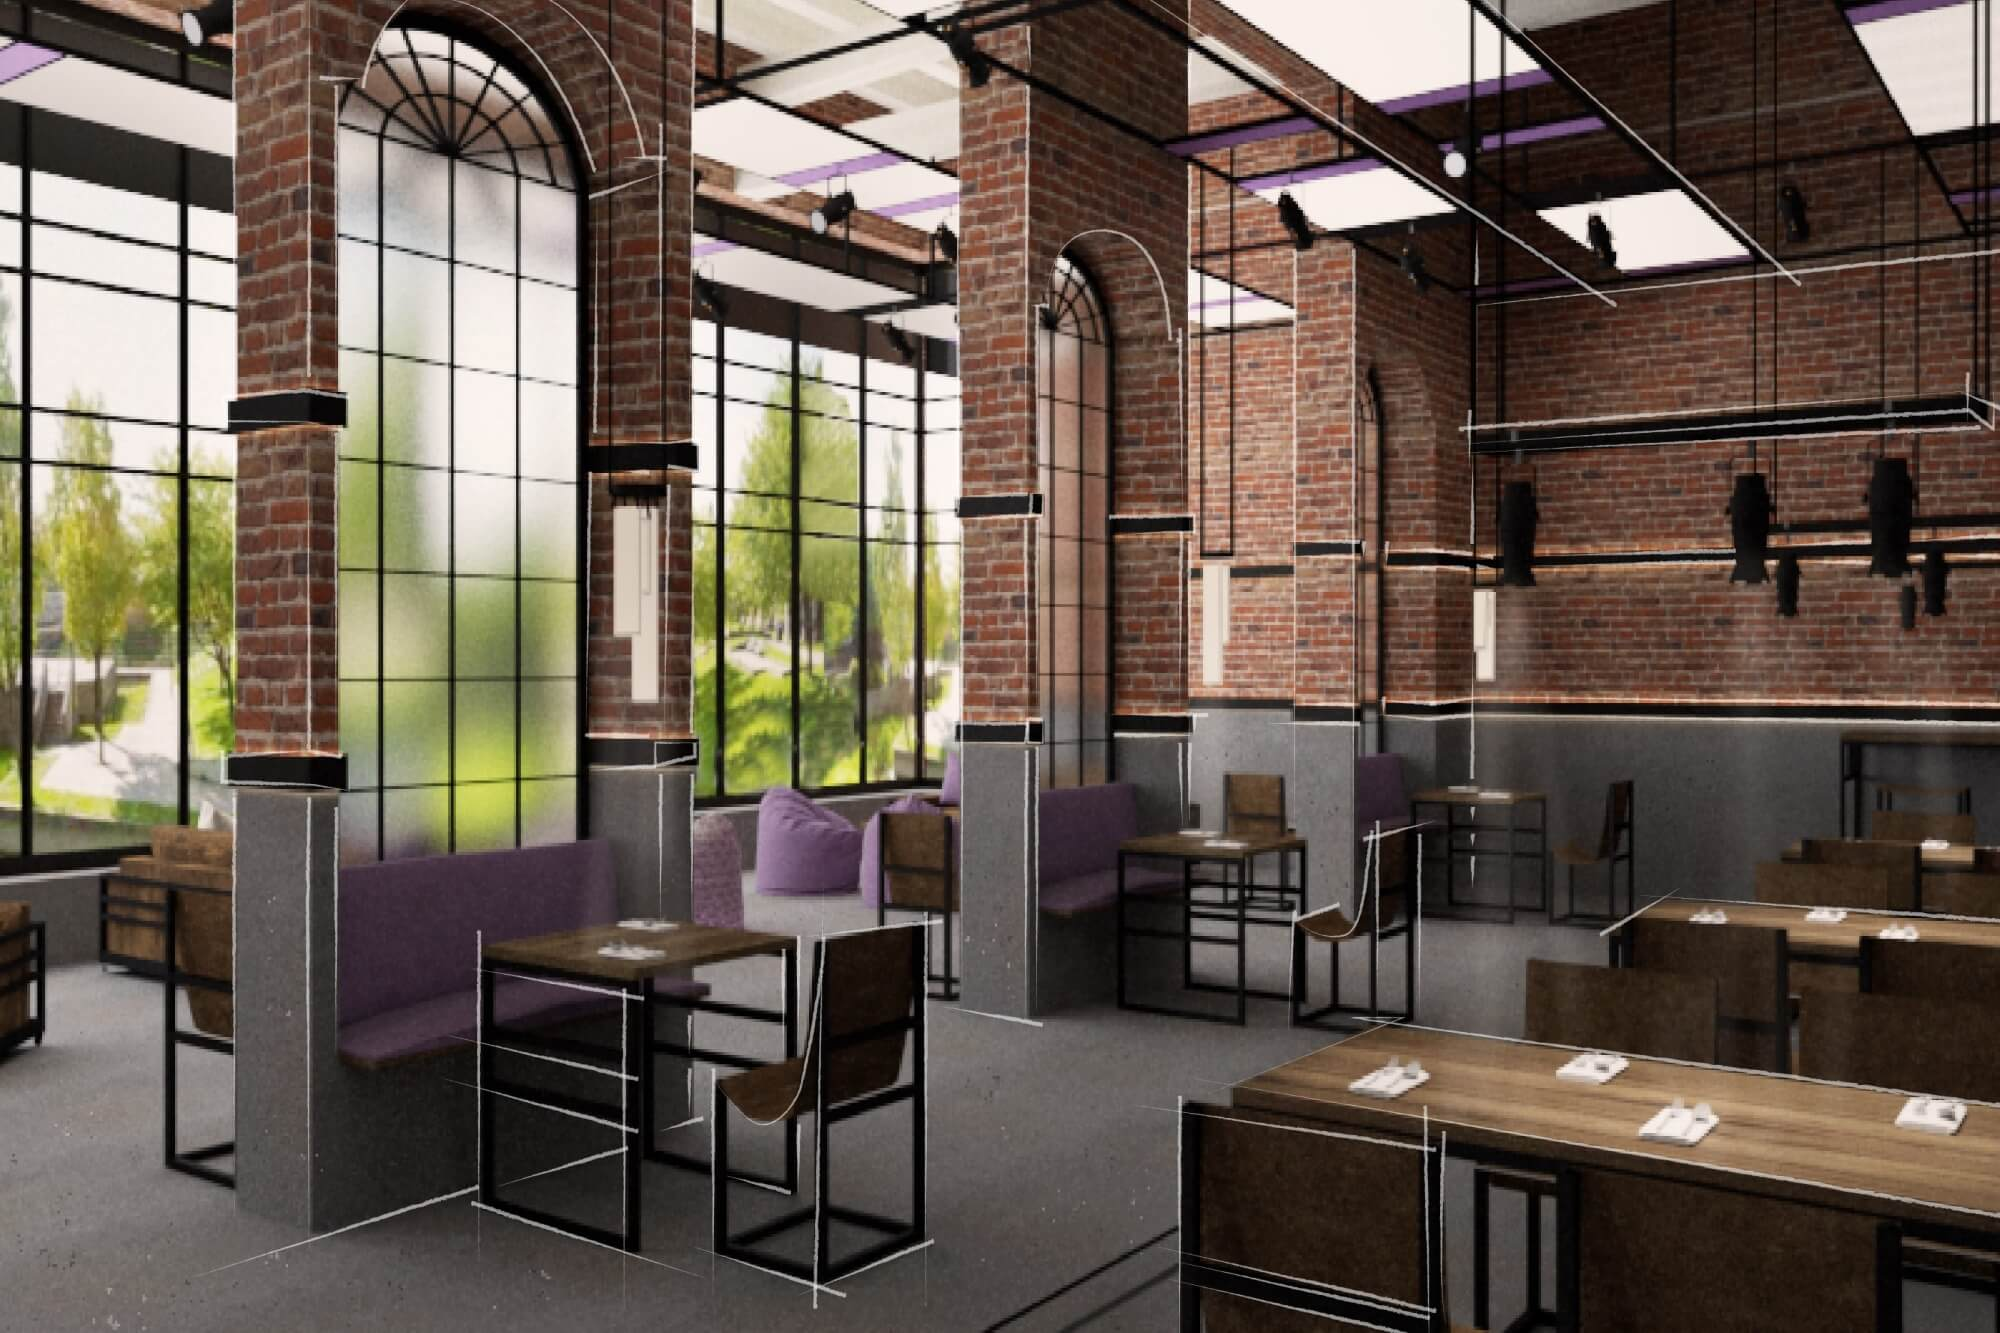 Digital illustration of a converted brick industrial building for use as a restaurant